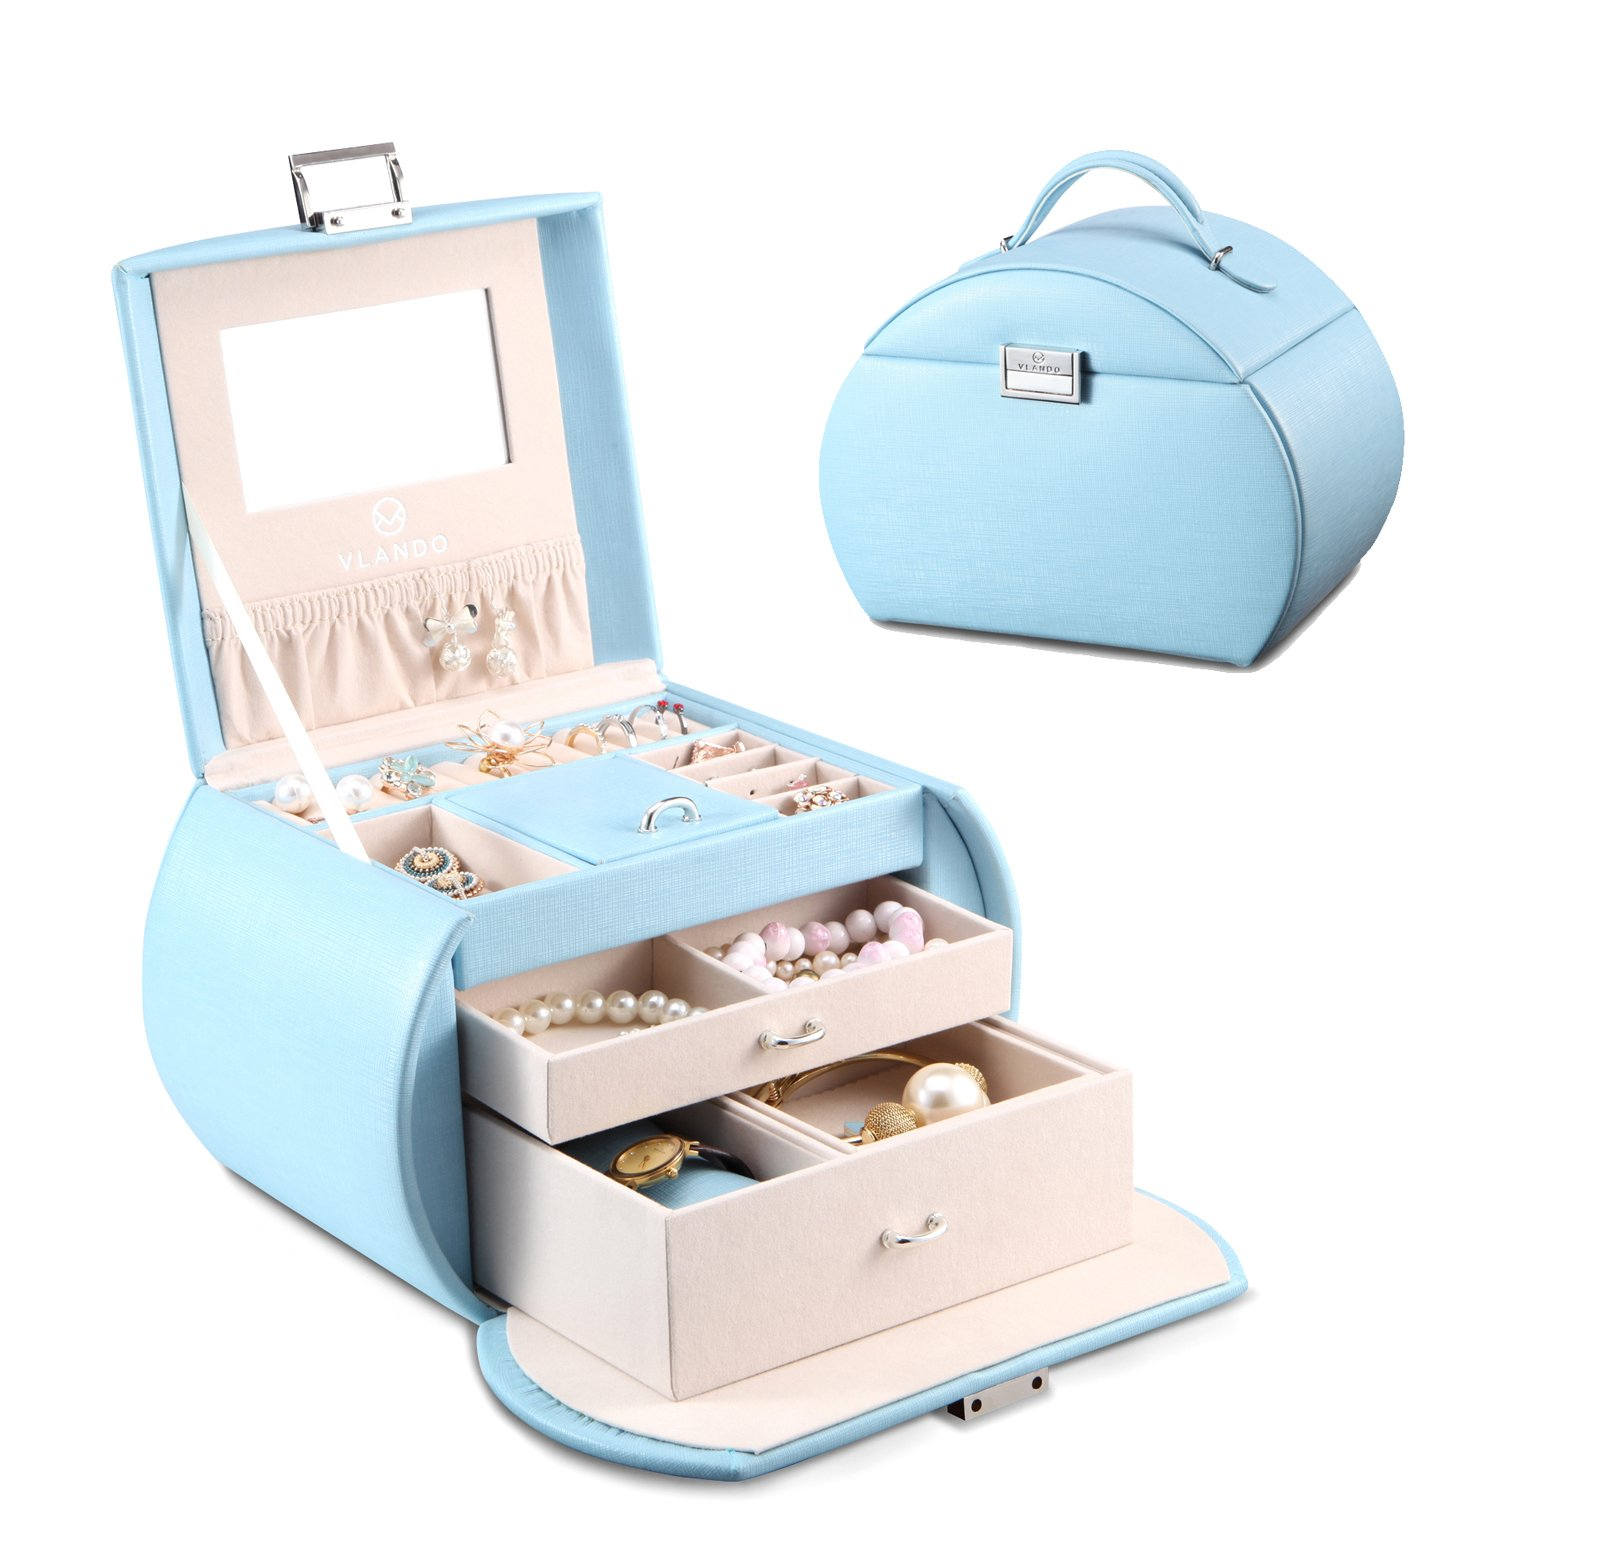 Vlando Princess Style Medium Size Jewelry Box, Fabulous Girls gifts (Blue)